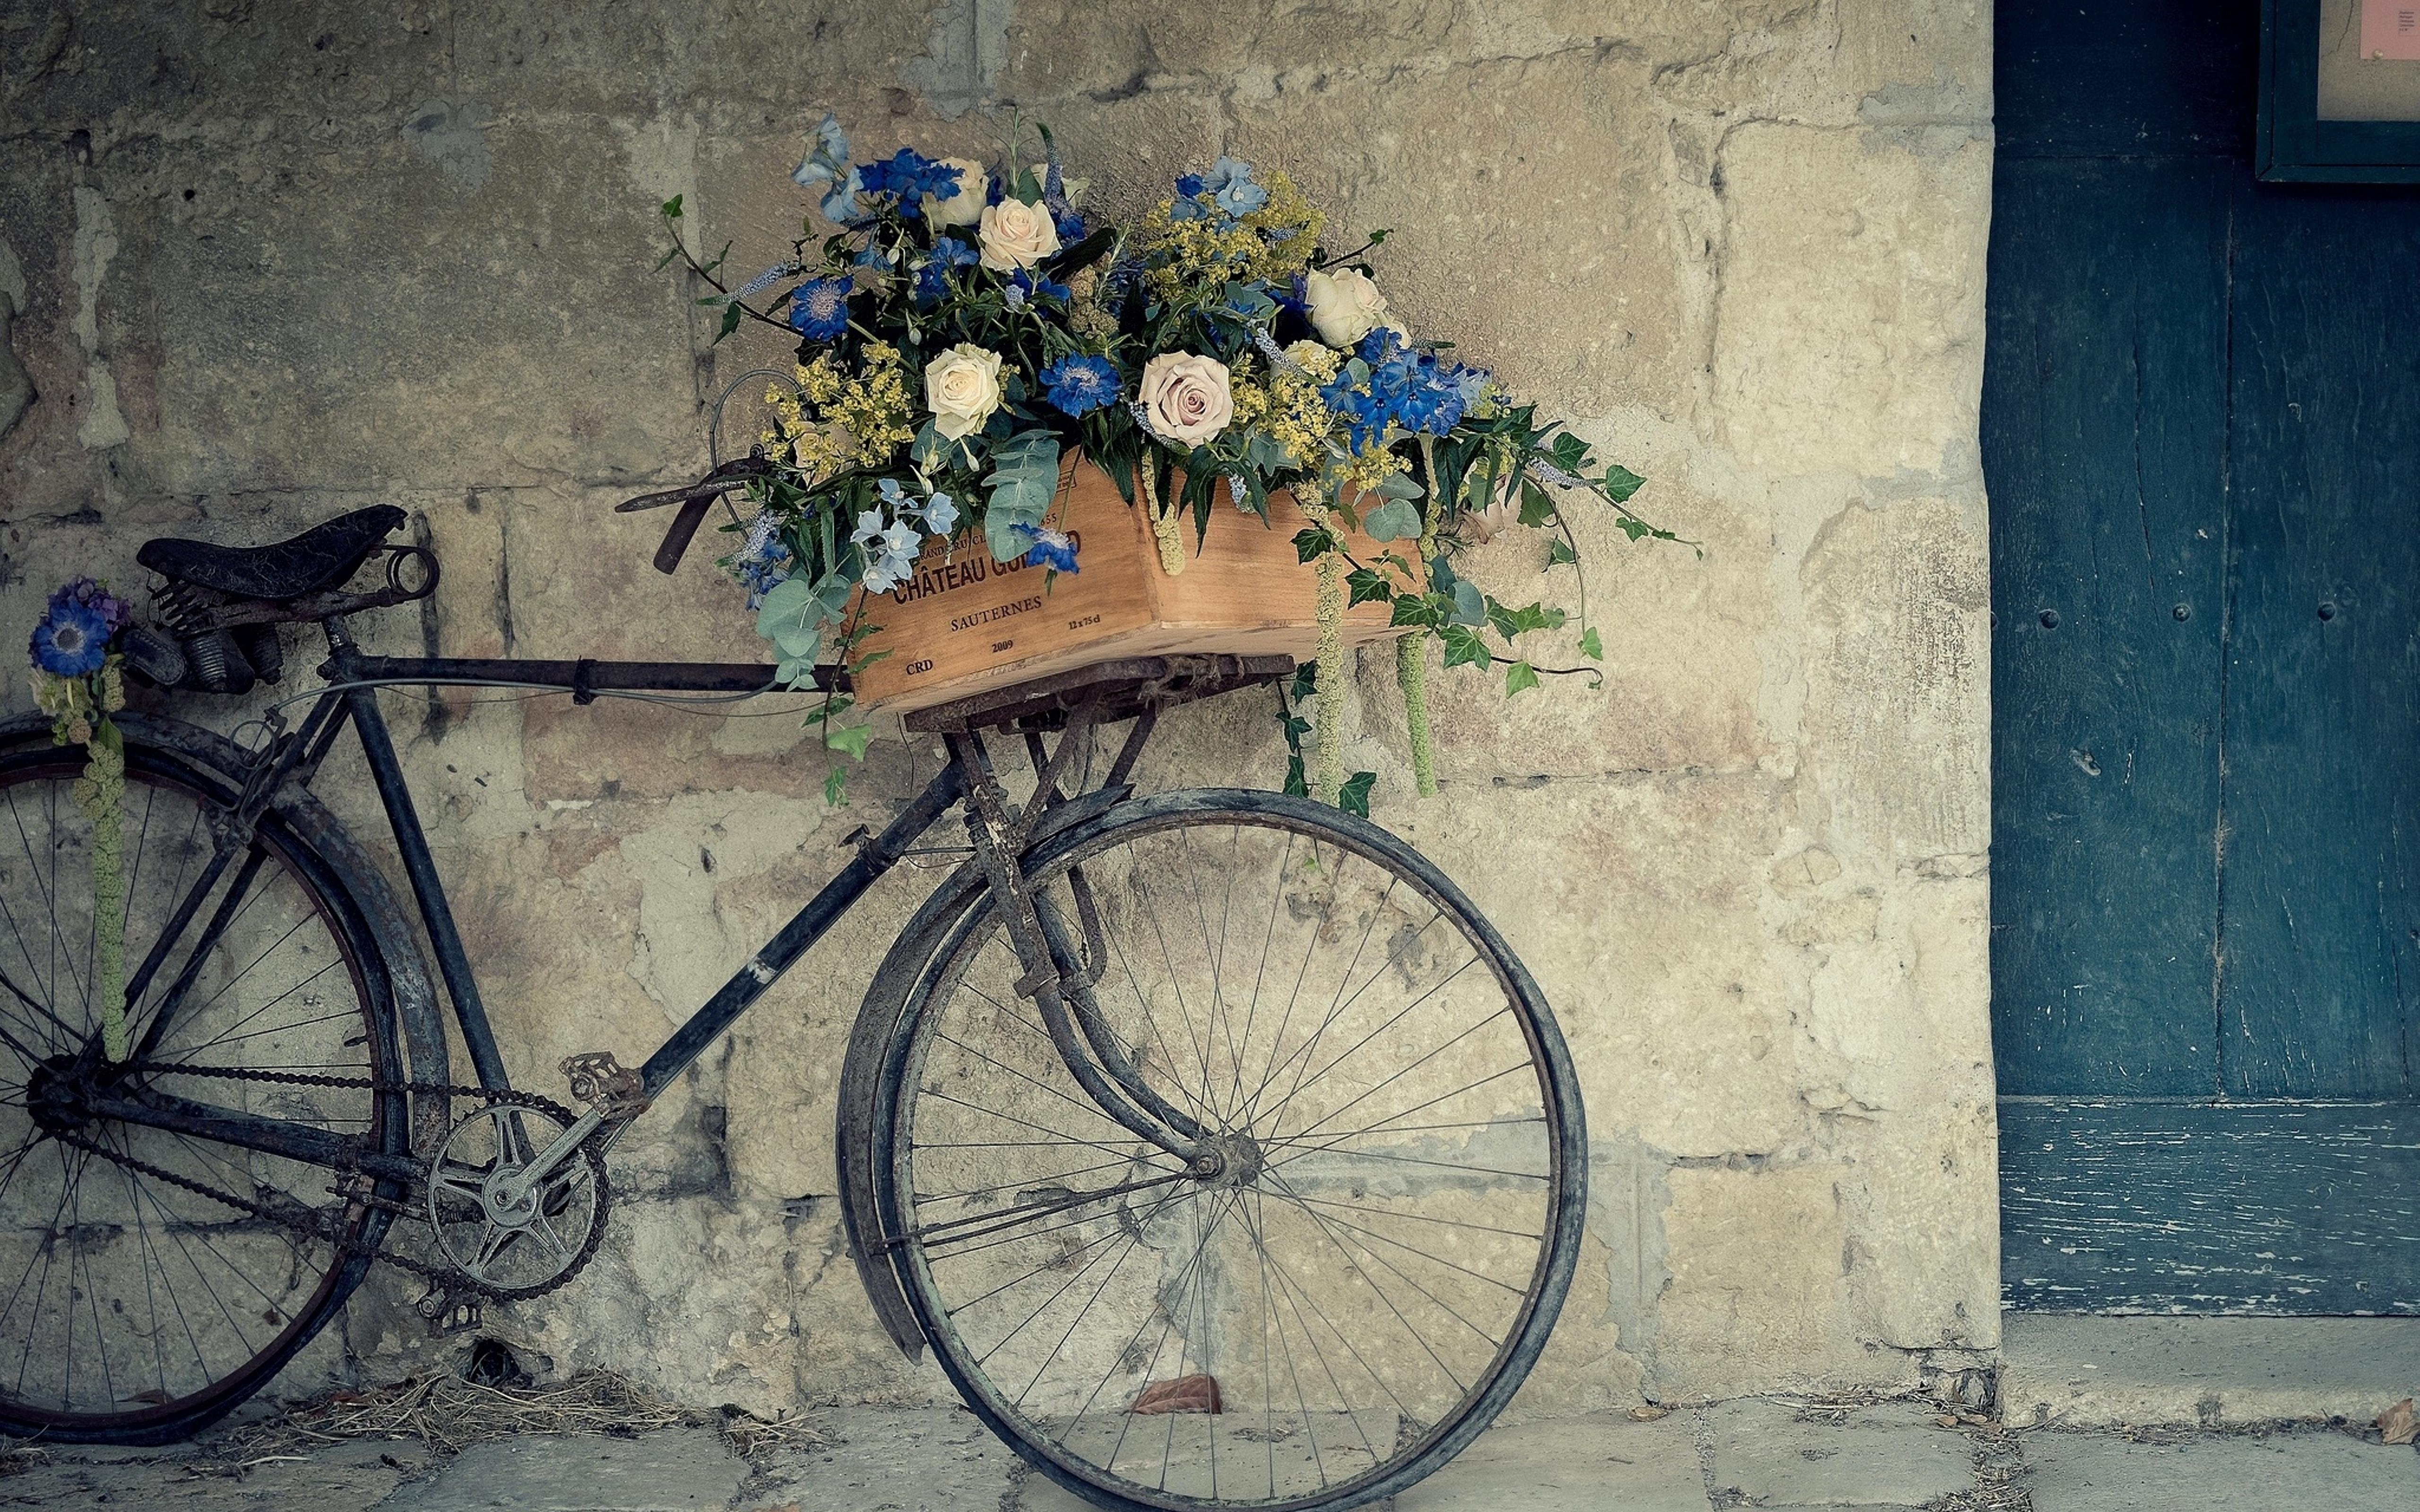 Download Wallpaper 5120x3200 A Basket With Flowers On The Old Bicycle